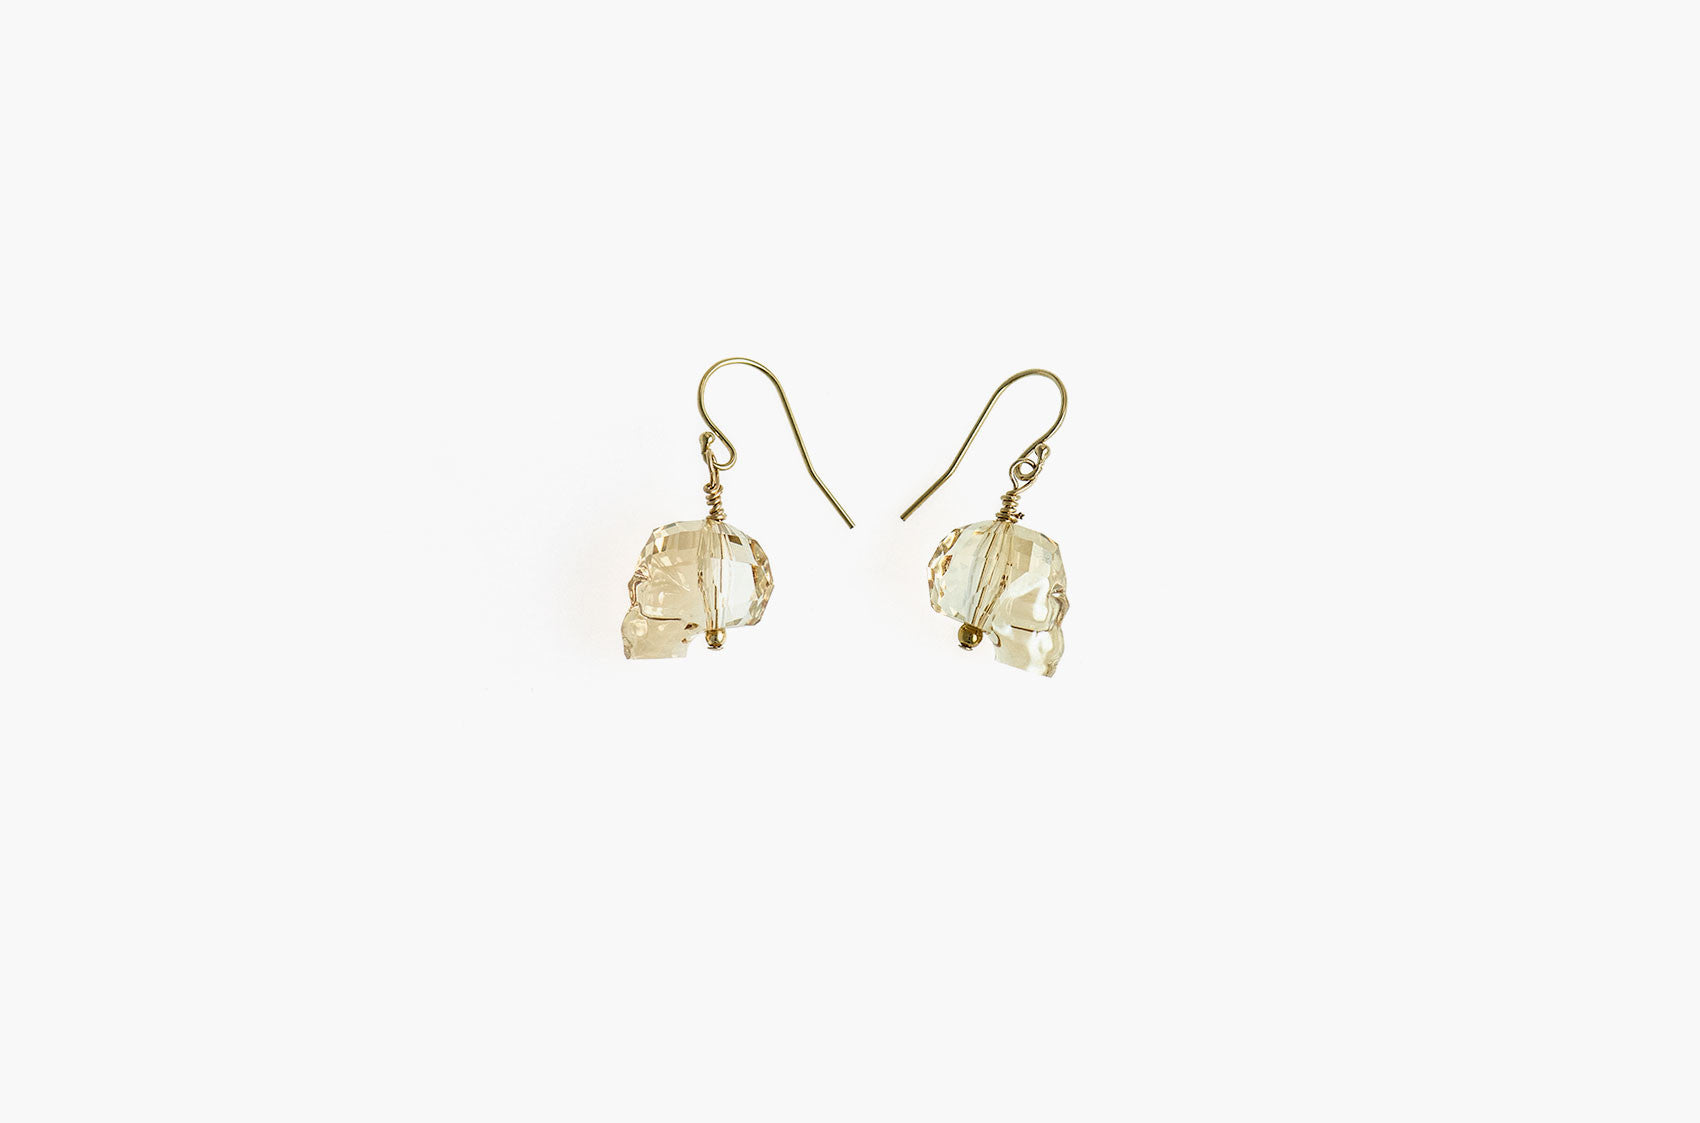 Lovely Bones Swarovski Skull earrings Golden Shadow with 14kt gold filled earwires